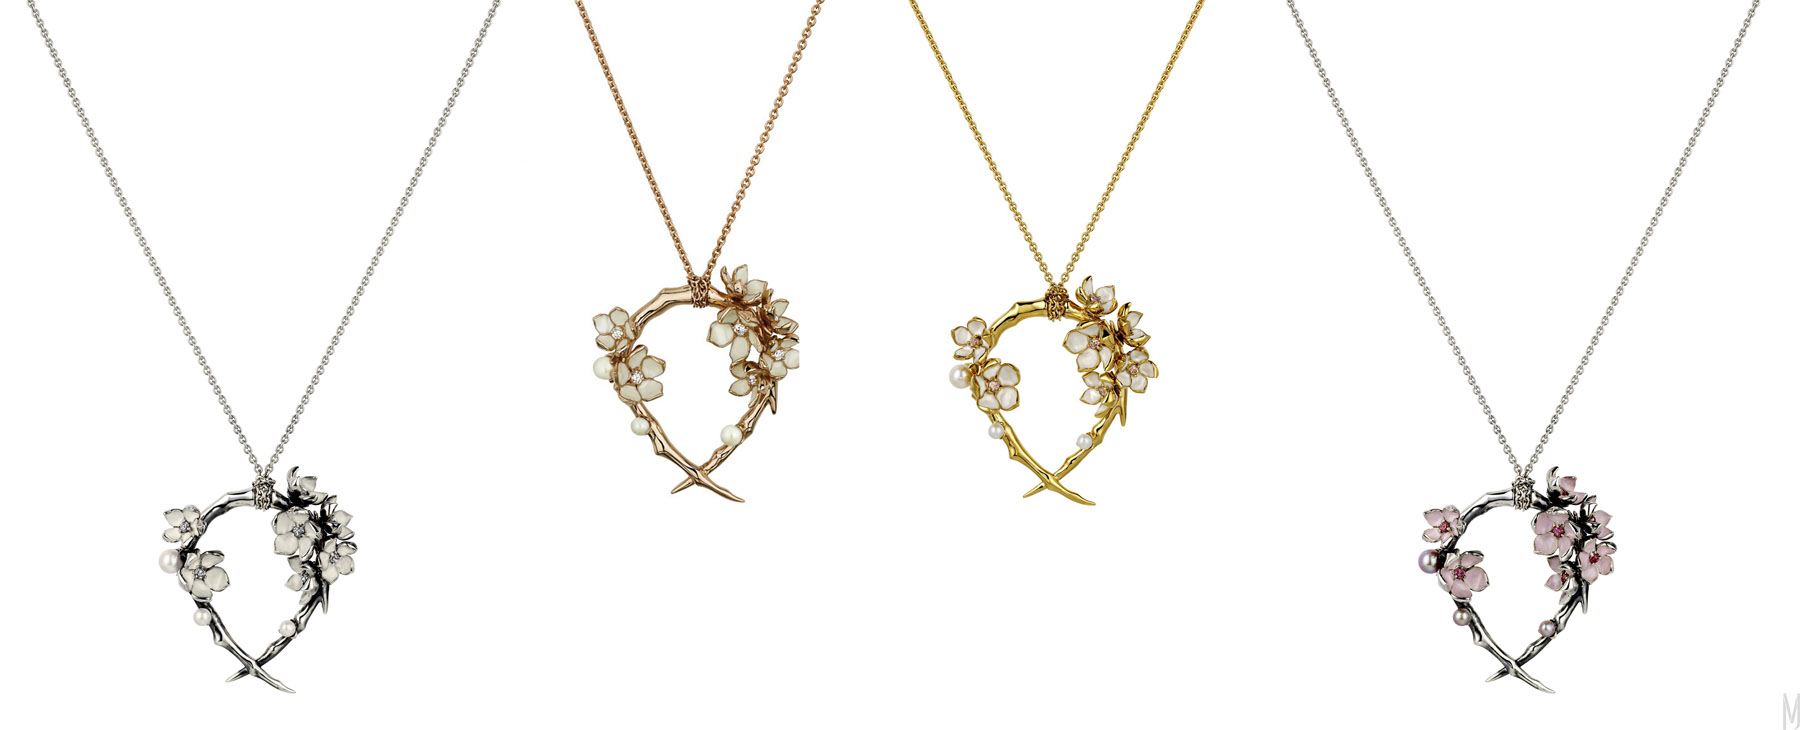 shaun leane cherry blossom hoop necklaces - madeofjewelry